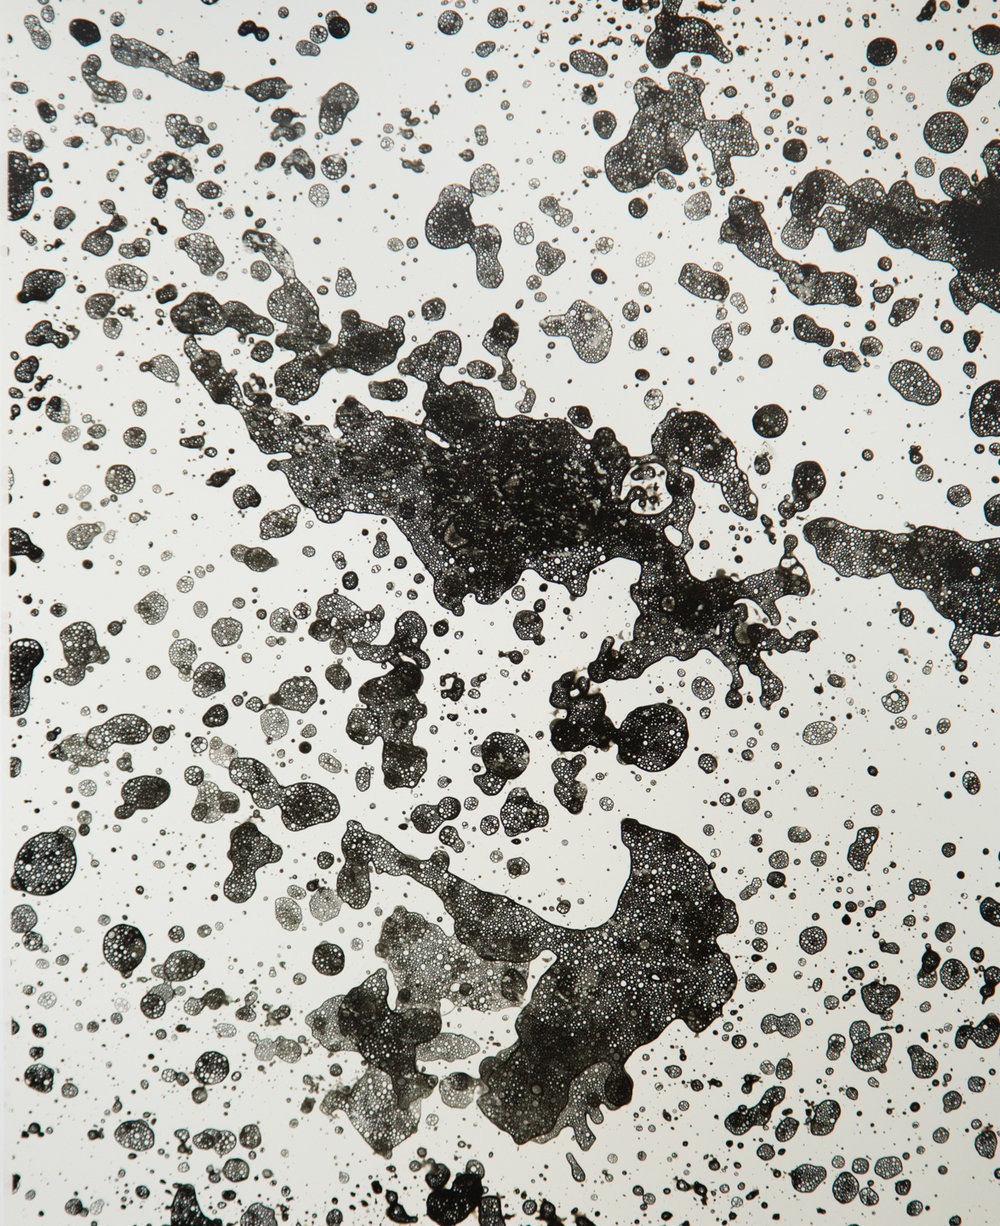 Ocean Abstraction 7.12.2016, Unique Silver Gelatin Print, 14 x 11 inches